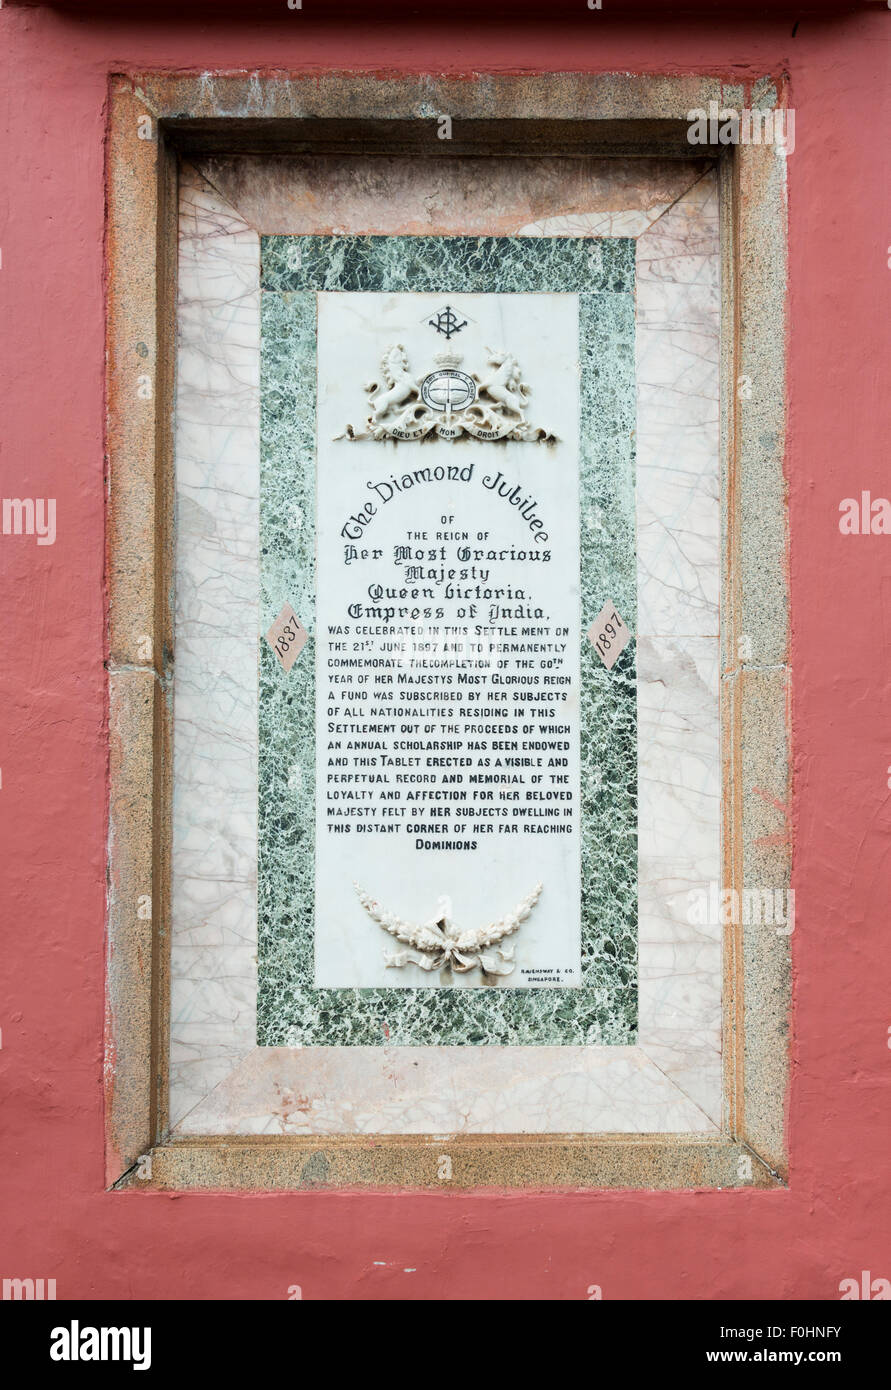 A commemorative plaque celebrating the diamond jubilee of Queen Victoria, Empress of India, in Melaka, Malacca, - Stock Image